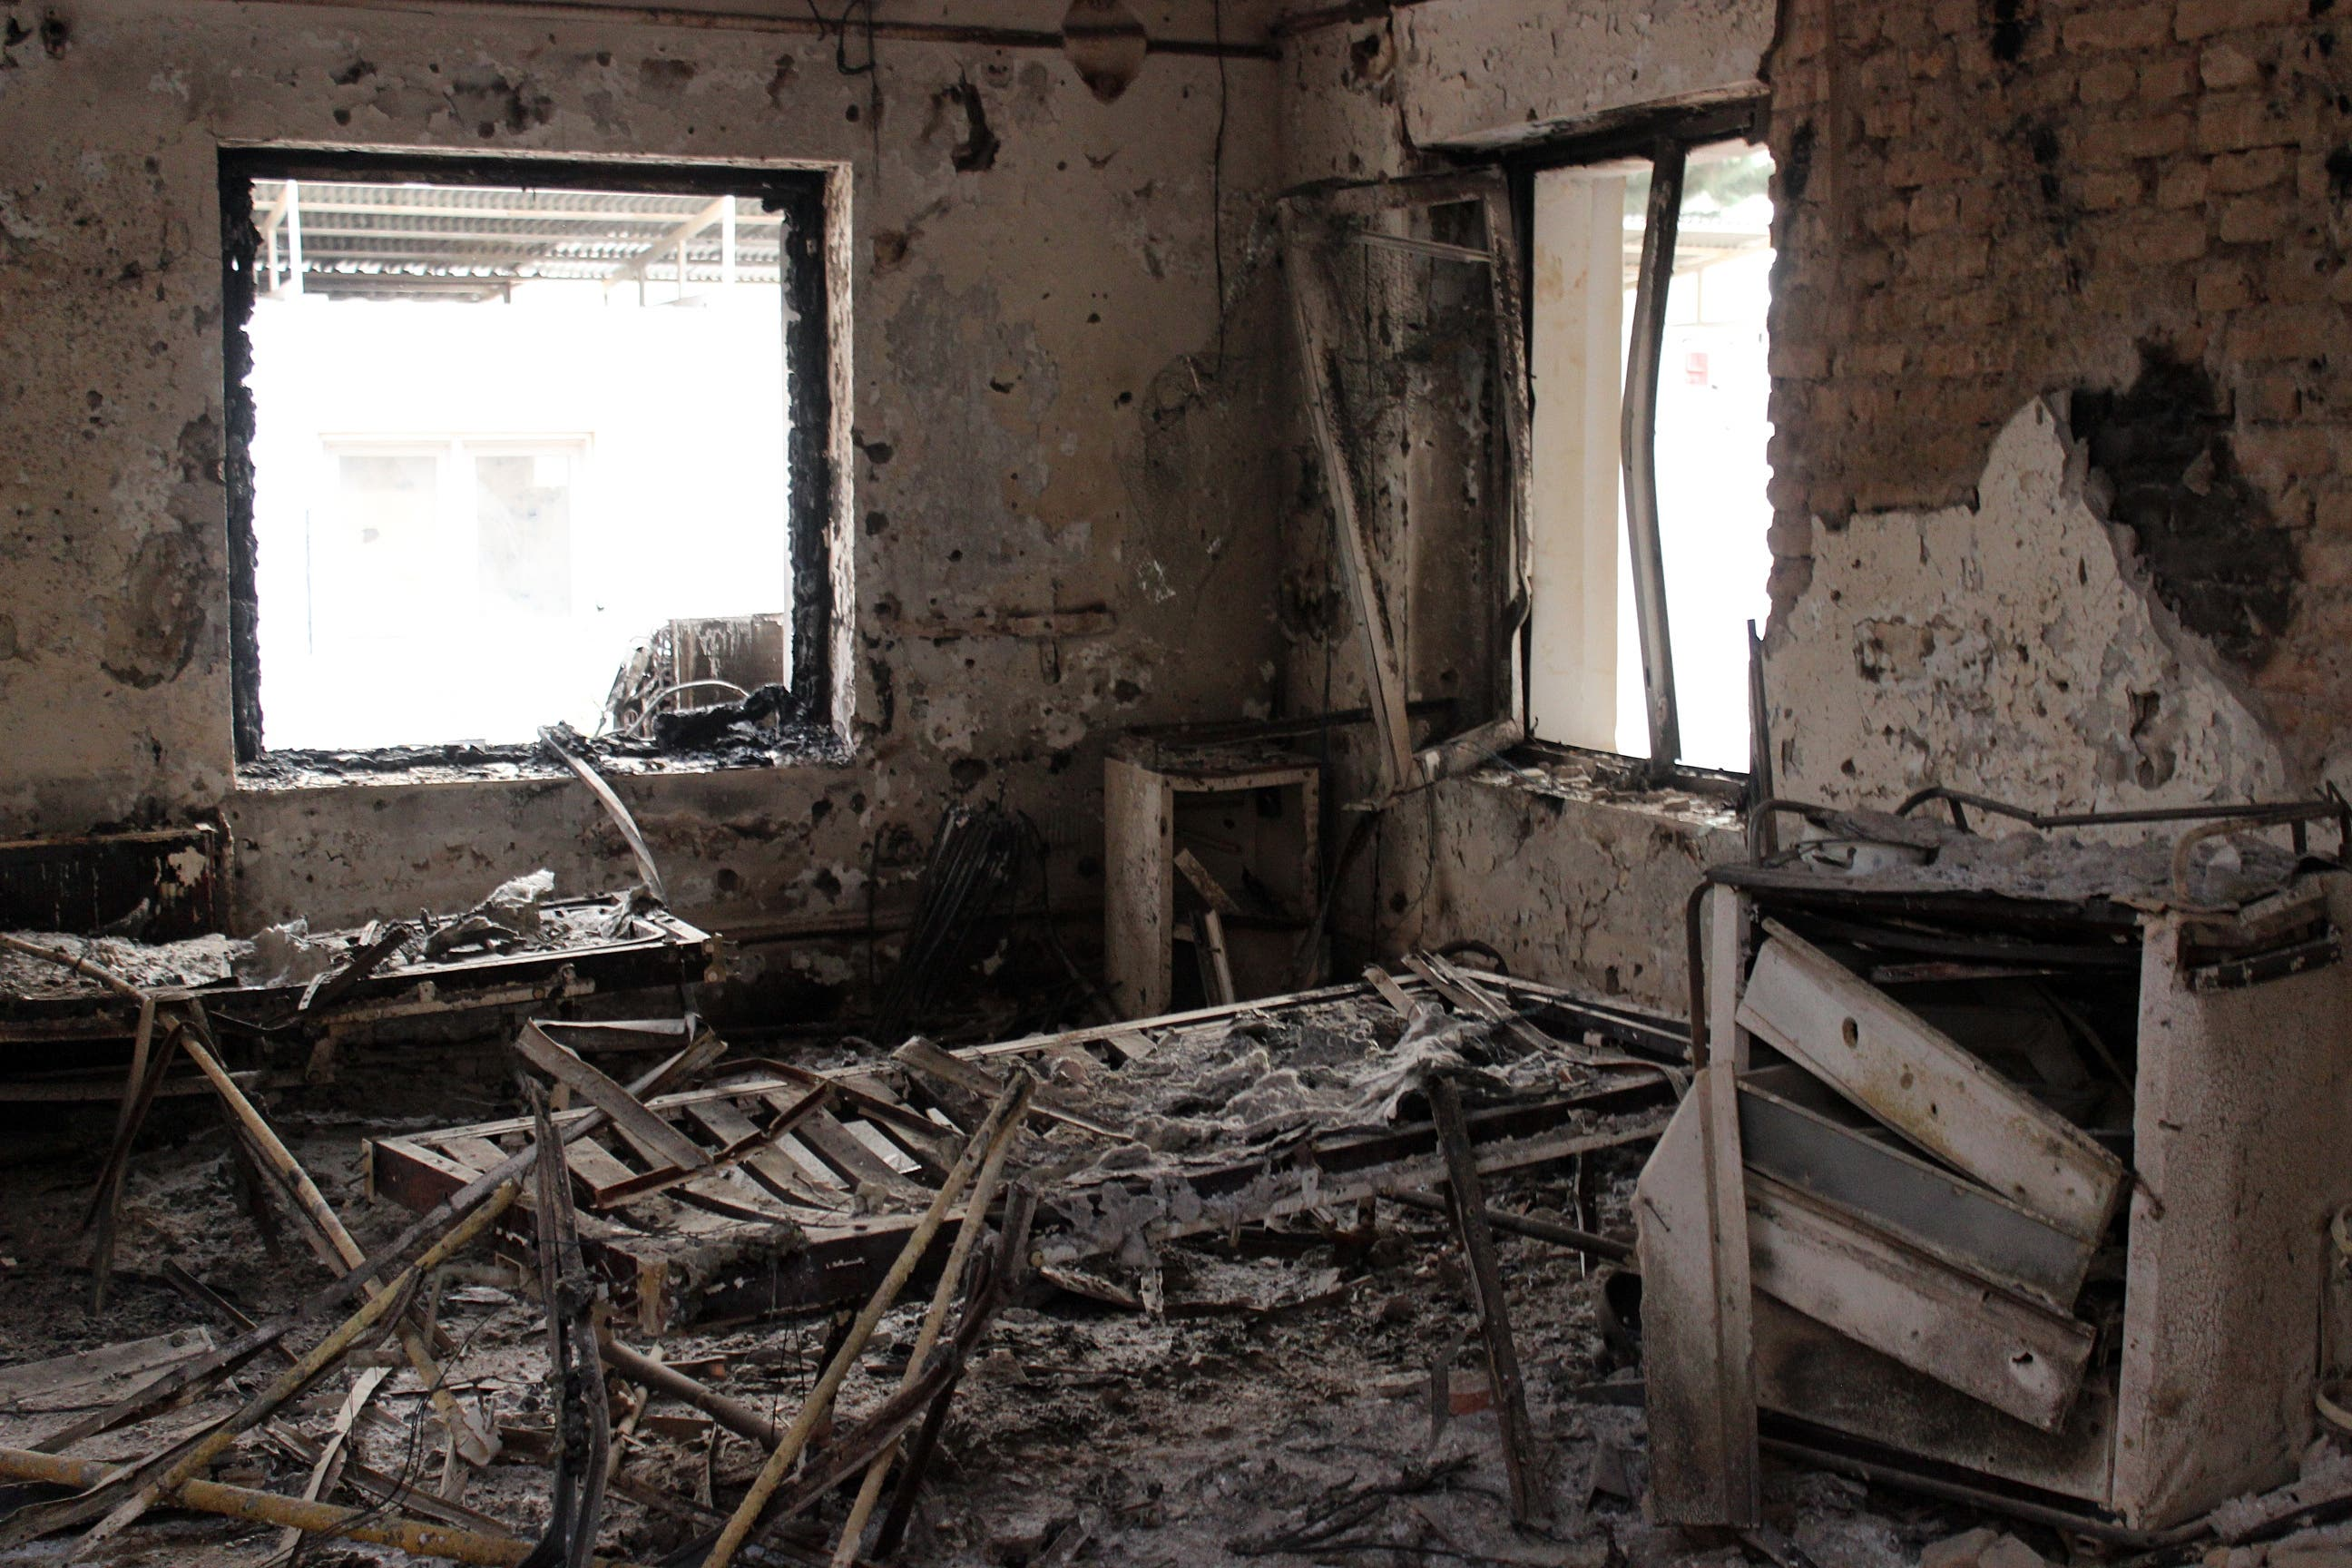 In this Friday, Oct. 16, 2015 photo, the charred remains of the Doctors Without Borders hospital is seen after it was hit by a U.S. airstrike in Kunduz, Afghanistan.